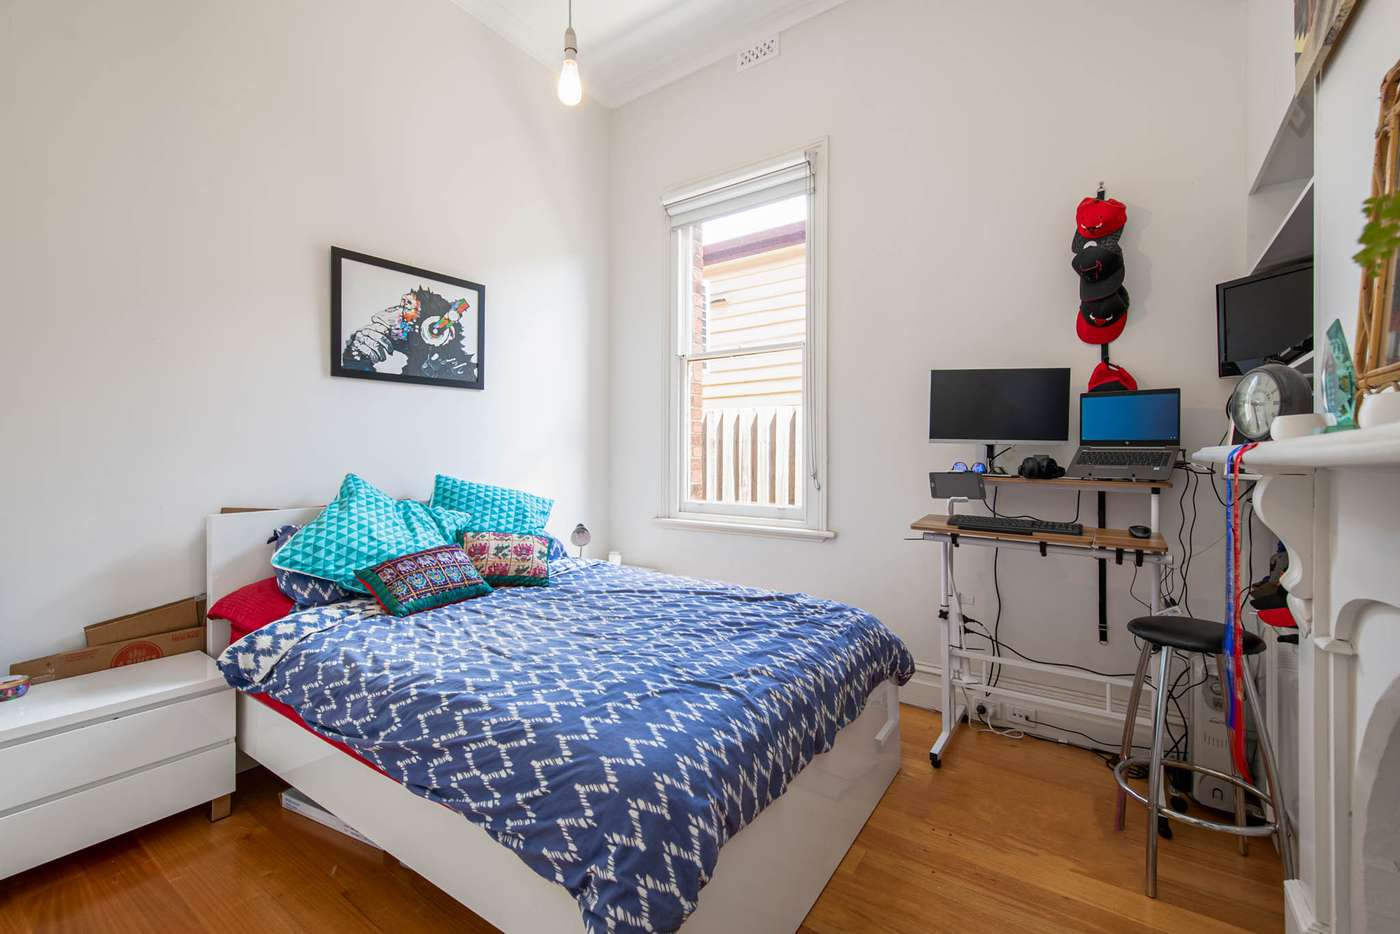 Sixth view of Homely house listing, 312 Barkly Street, Brunswick VIC 3056